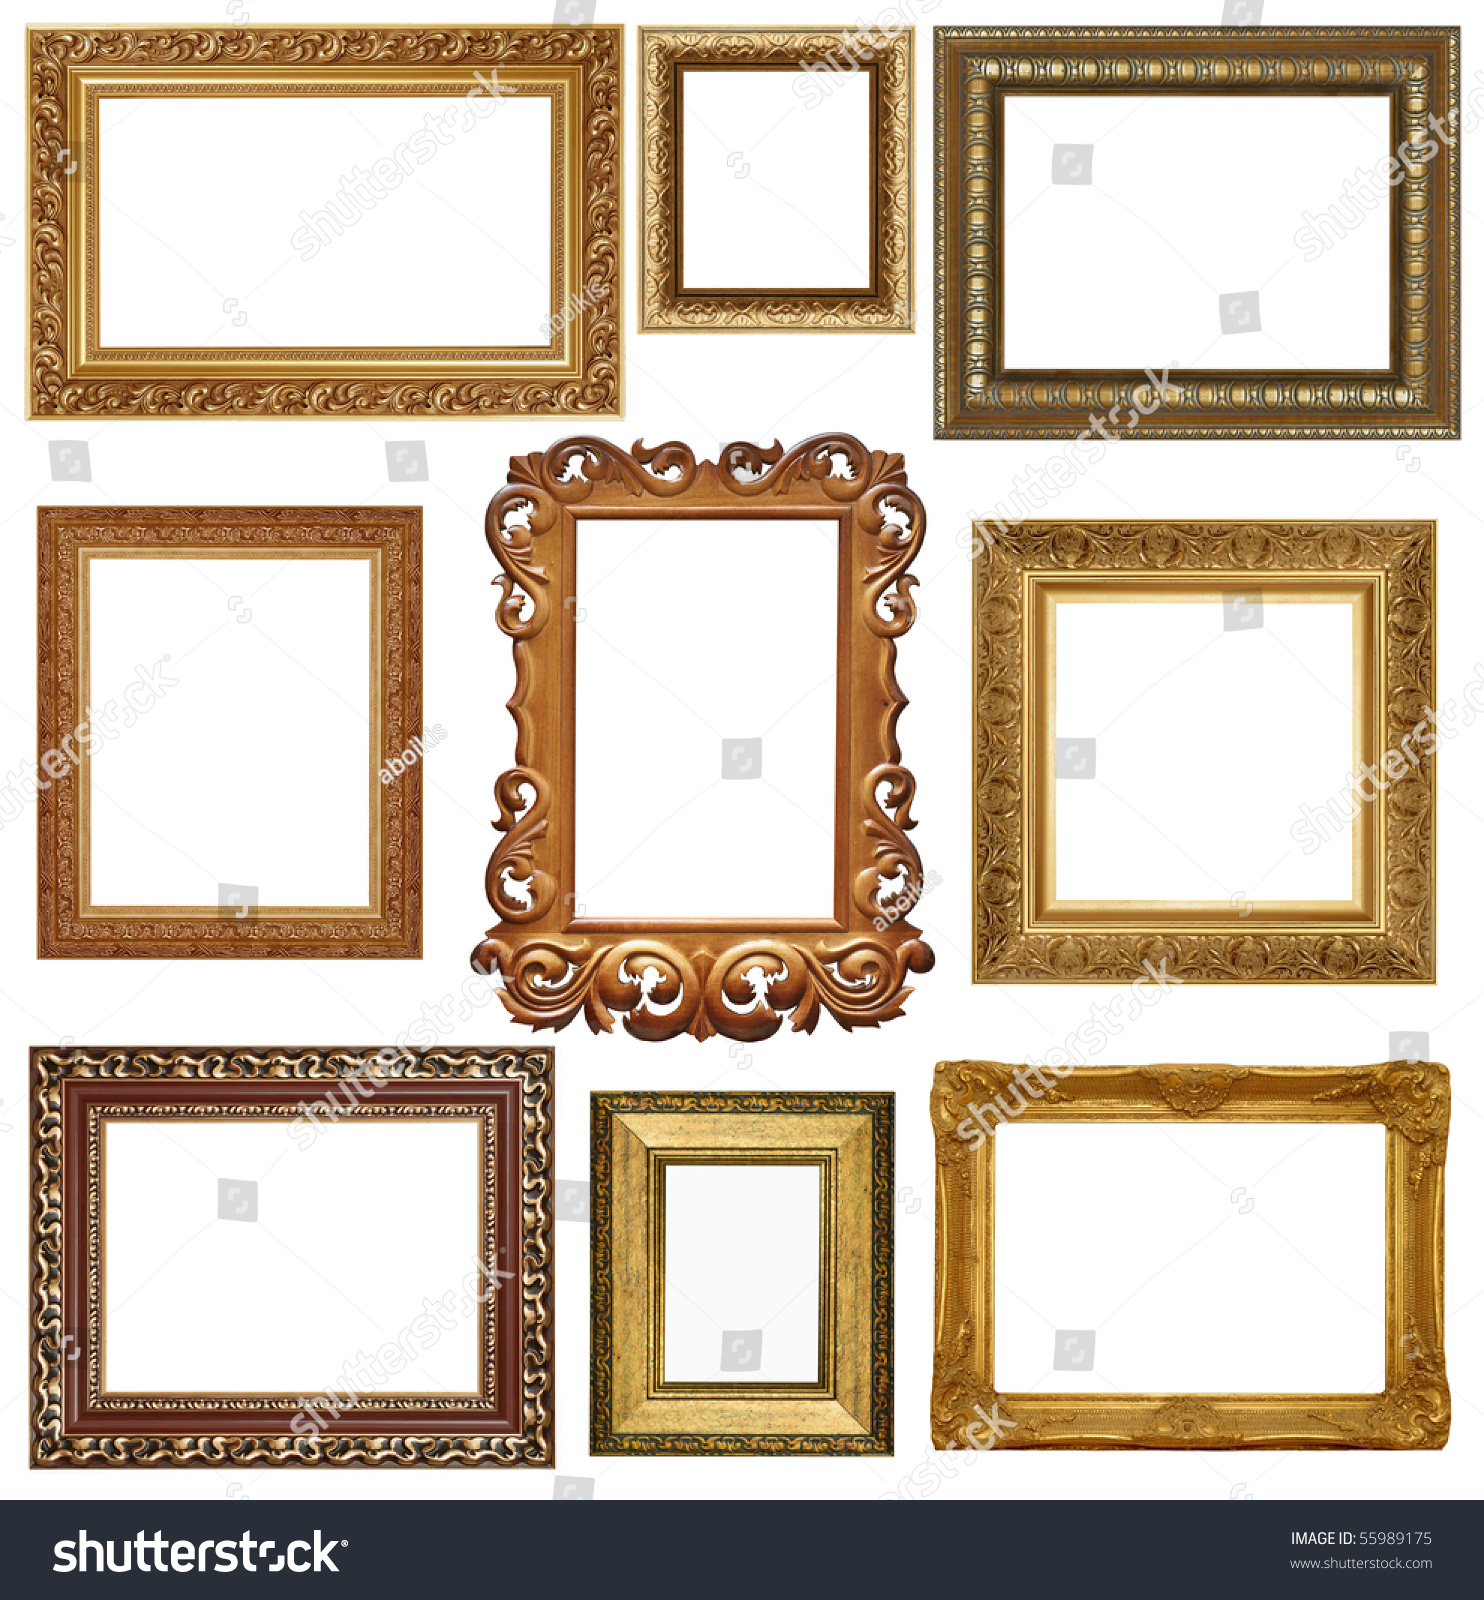 nine antique picture frames isolated on white high resolution stock photo 55989175 shutterstock. Black Bedroom Furniture Sets. Home Design Ideas